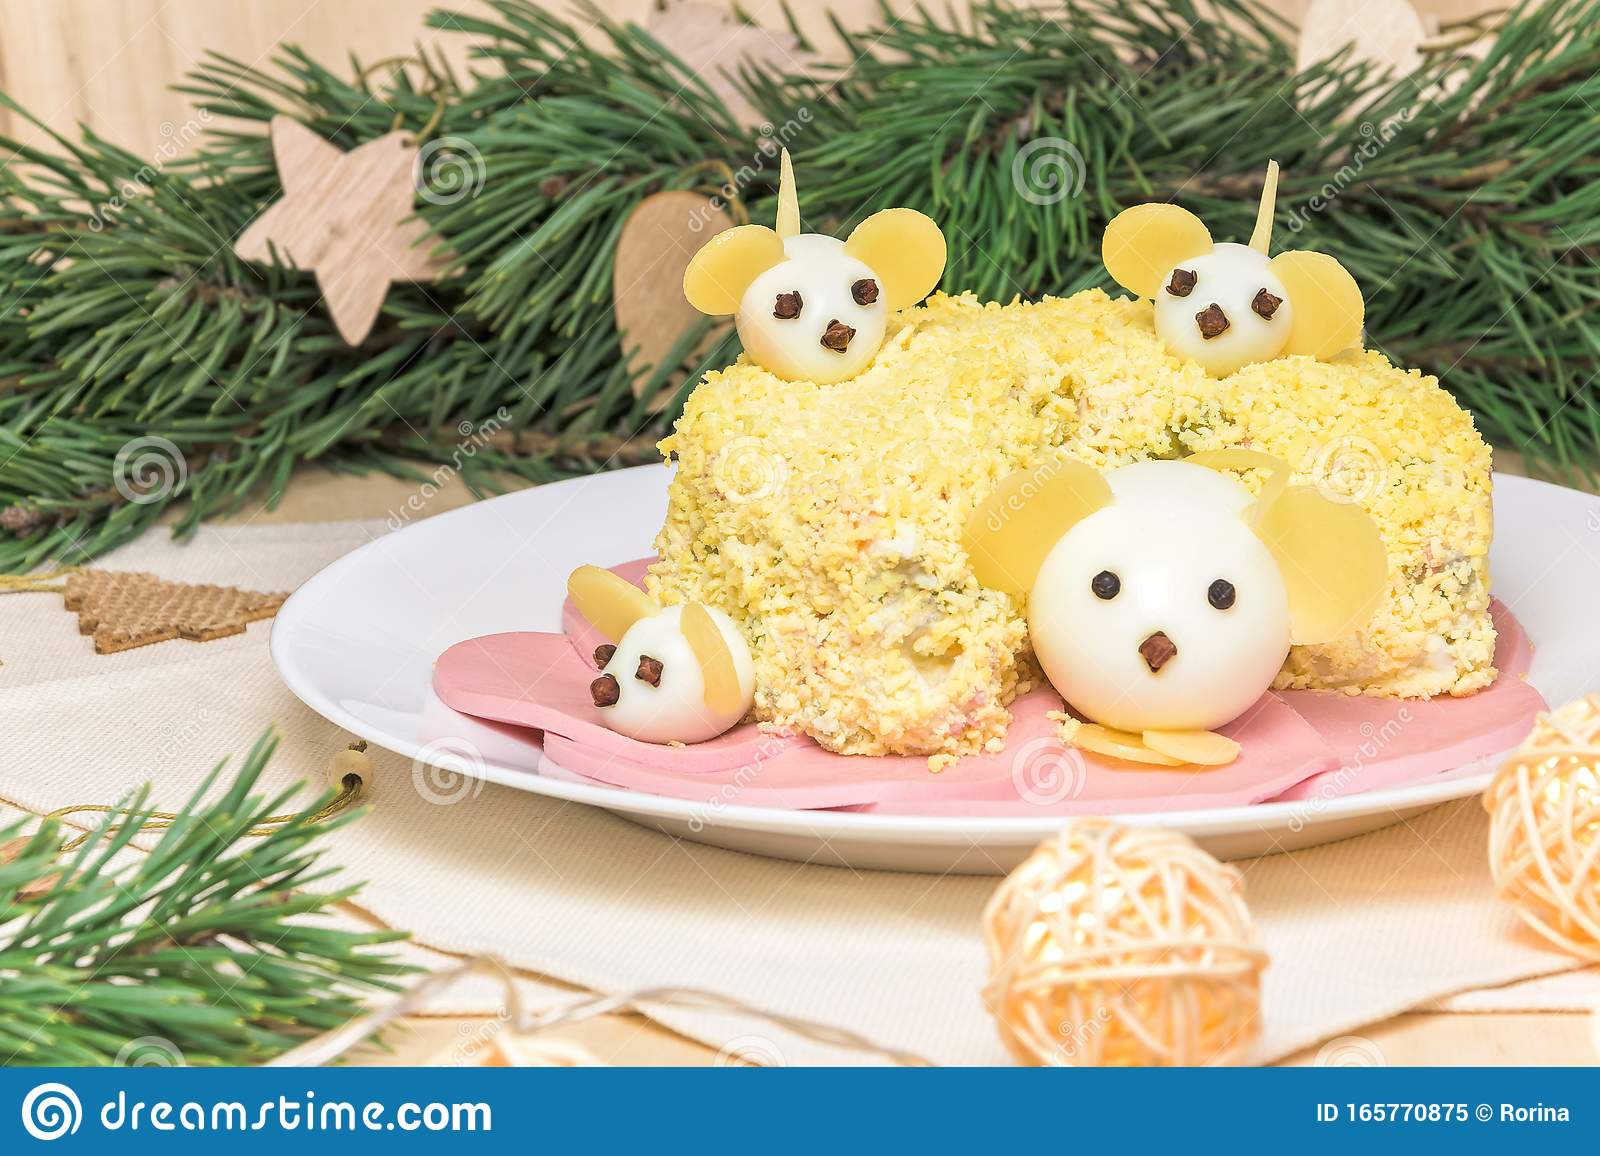 Christmas Salad 2020 Holiday Christmas Salad 2020 New Year Cheese Head Shape With Mouse